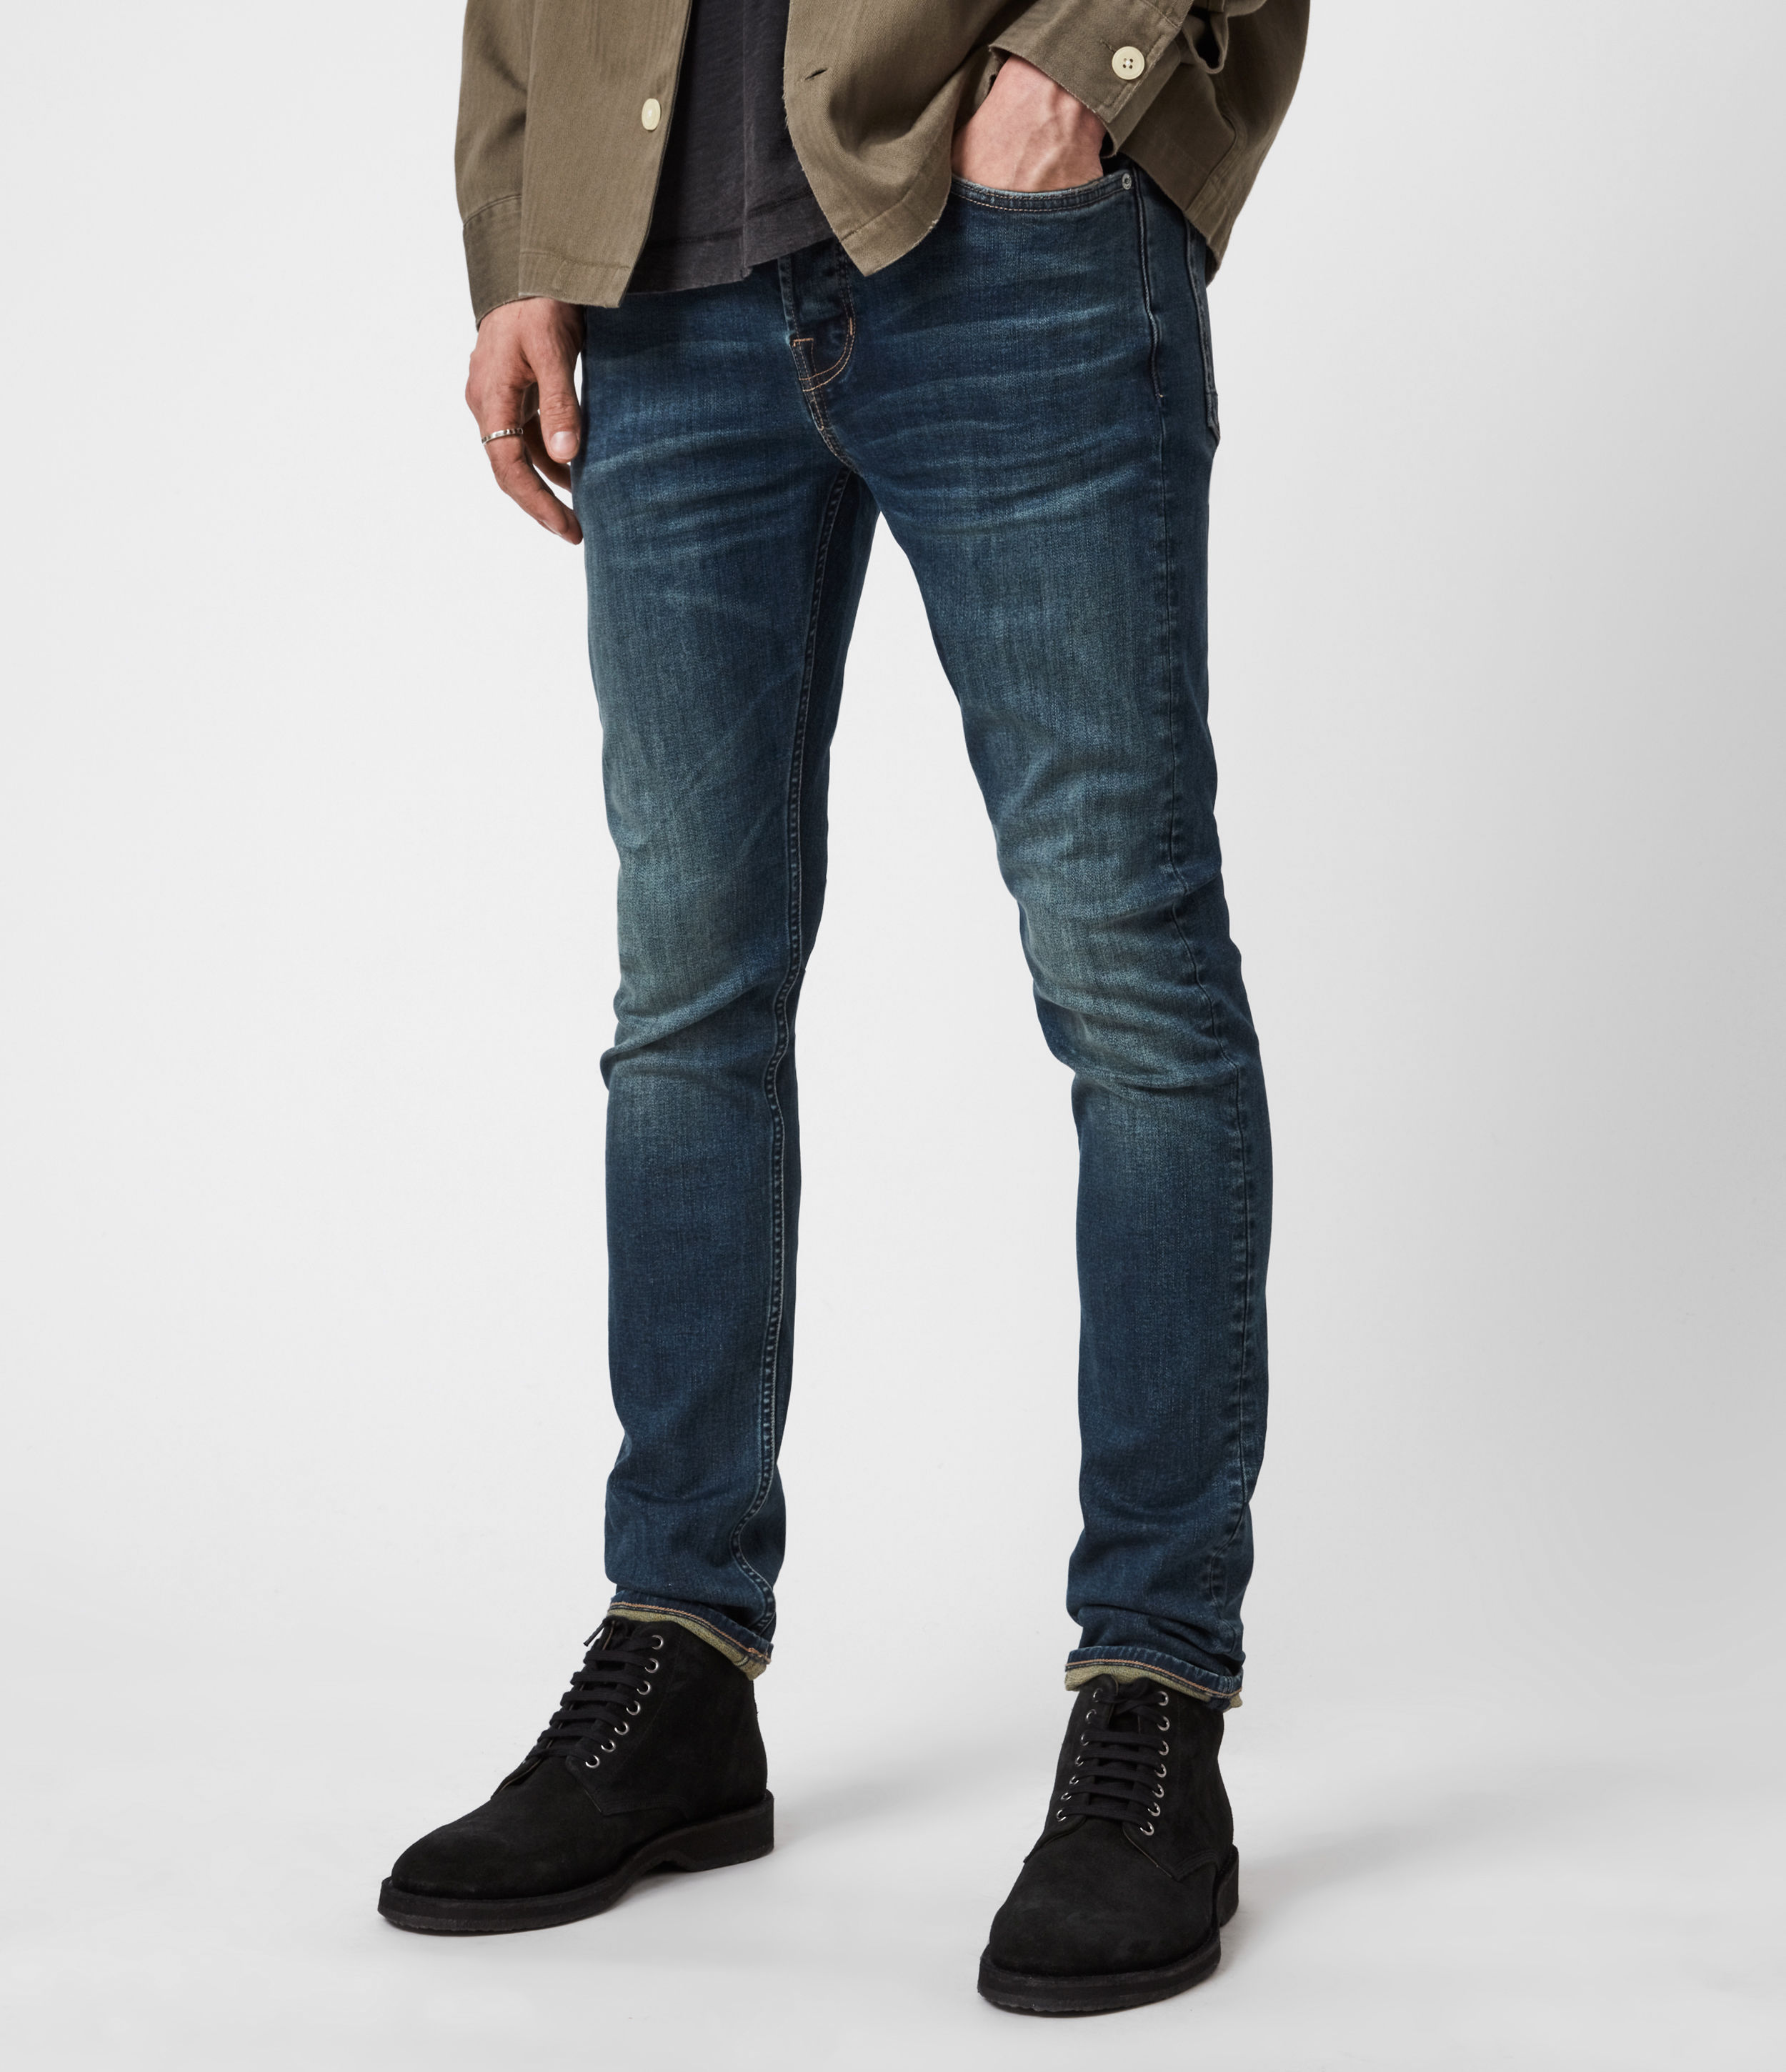 AllSaints Men's Cotton Traditional Ronnie Extra Skinny Jeans, Blue, Size: 32